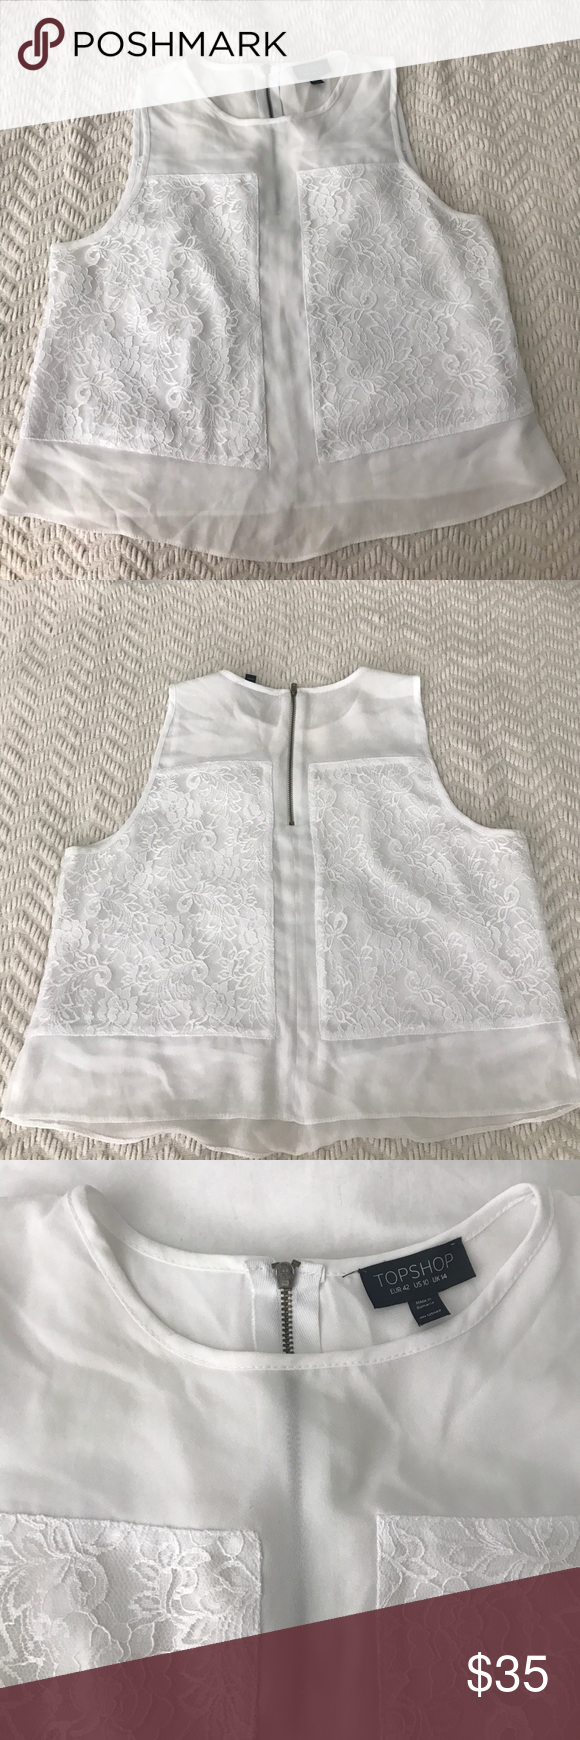 Topshop lace cropped top Topshop laced panel slightly cropped top. US size 10. Somewhat sheer top with lace panel design in the front and back. Half zipper closure on back. 100% polyester. Worn twice and washed, in good condition. Perfect for dressing up or worn casually! Topshop Tops Crop Tops